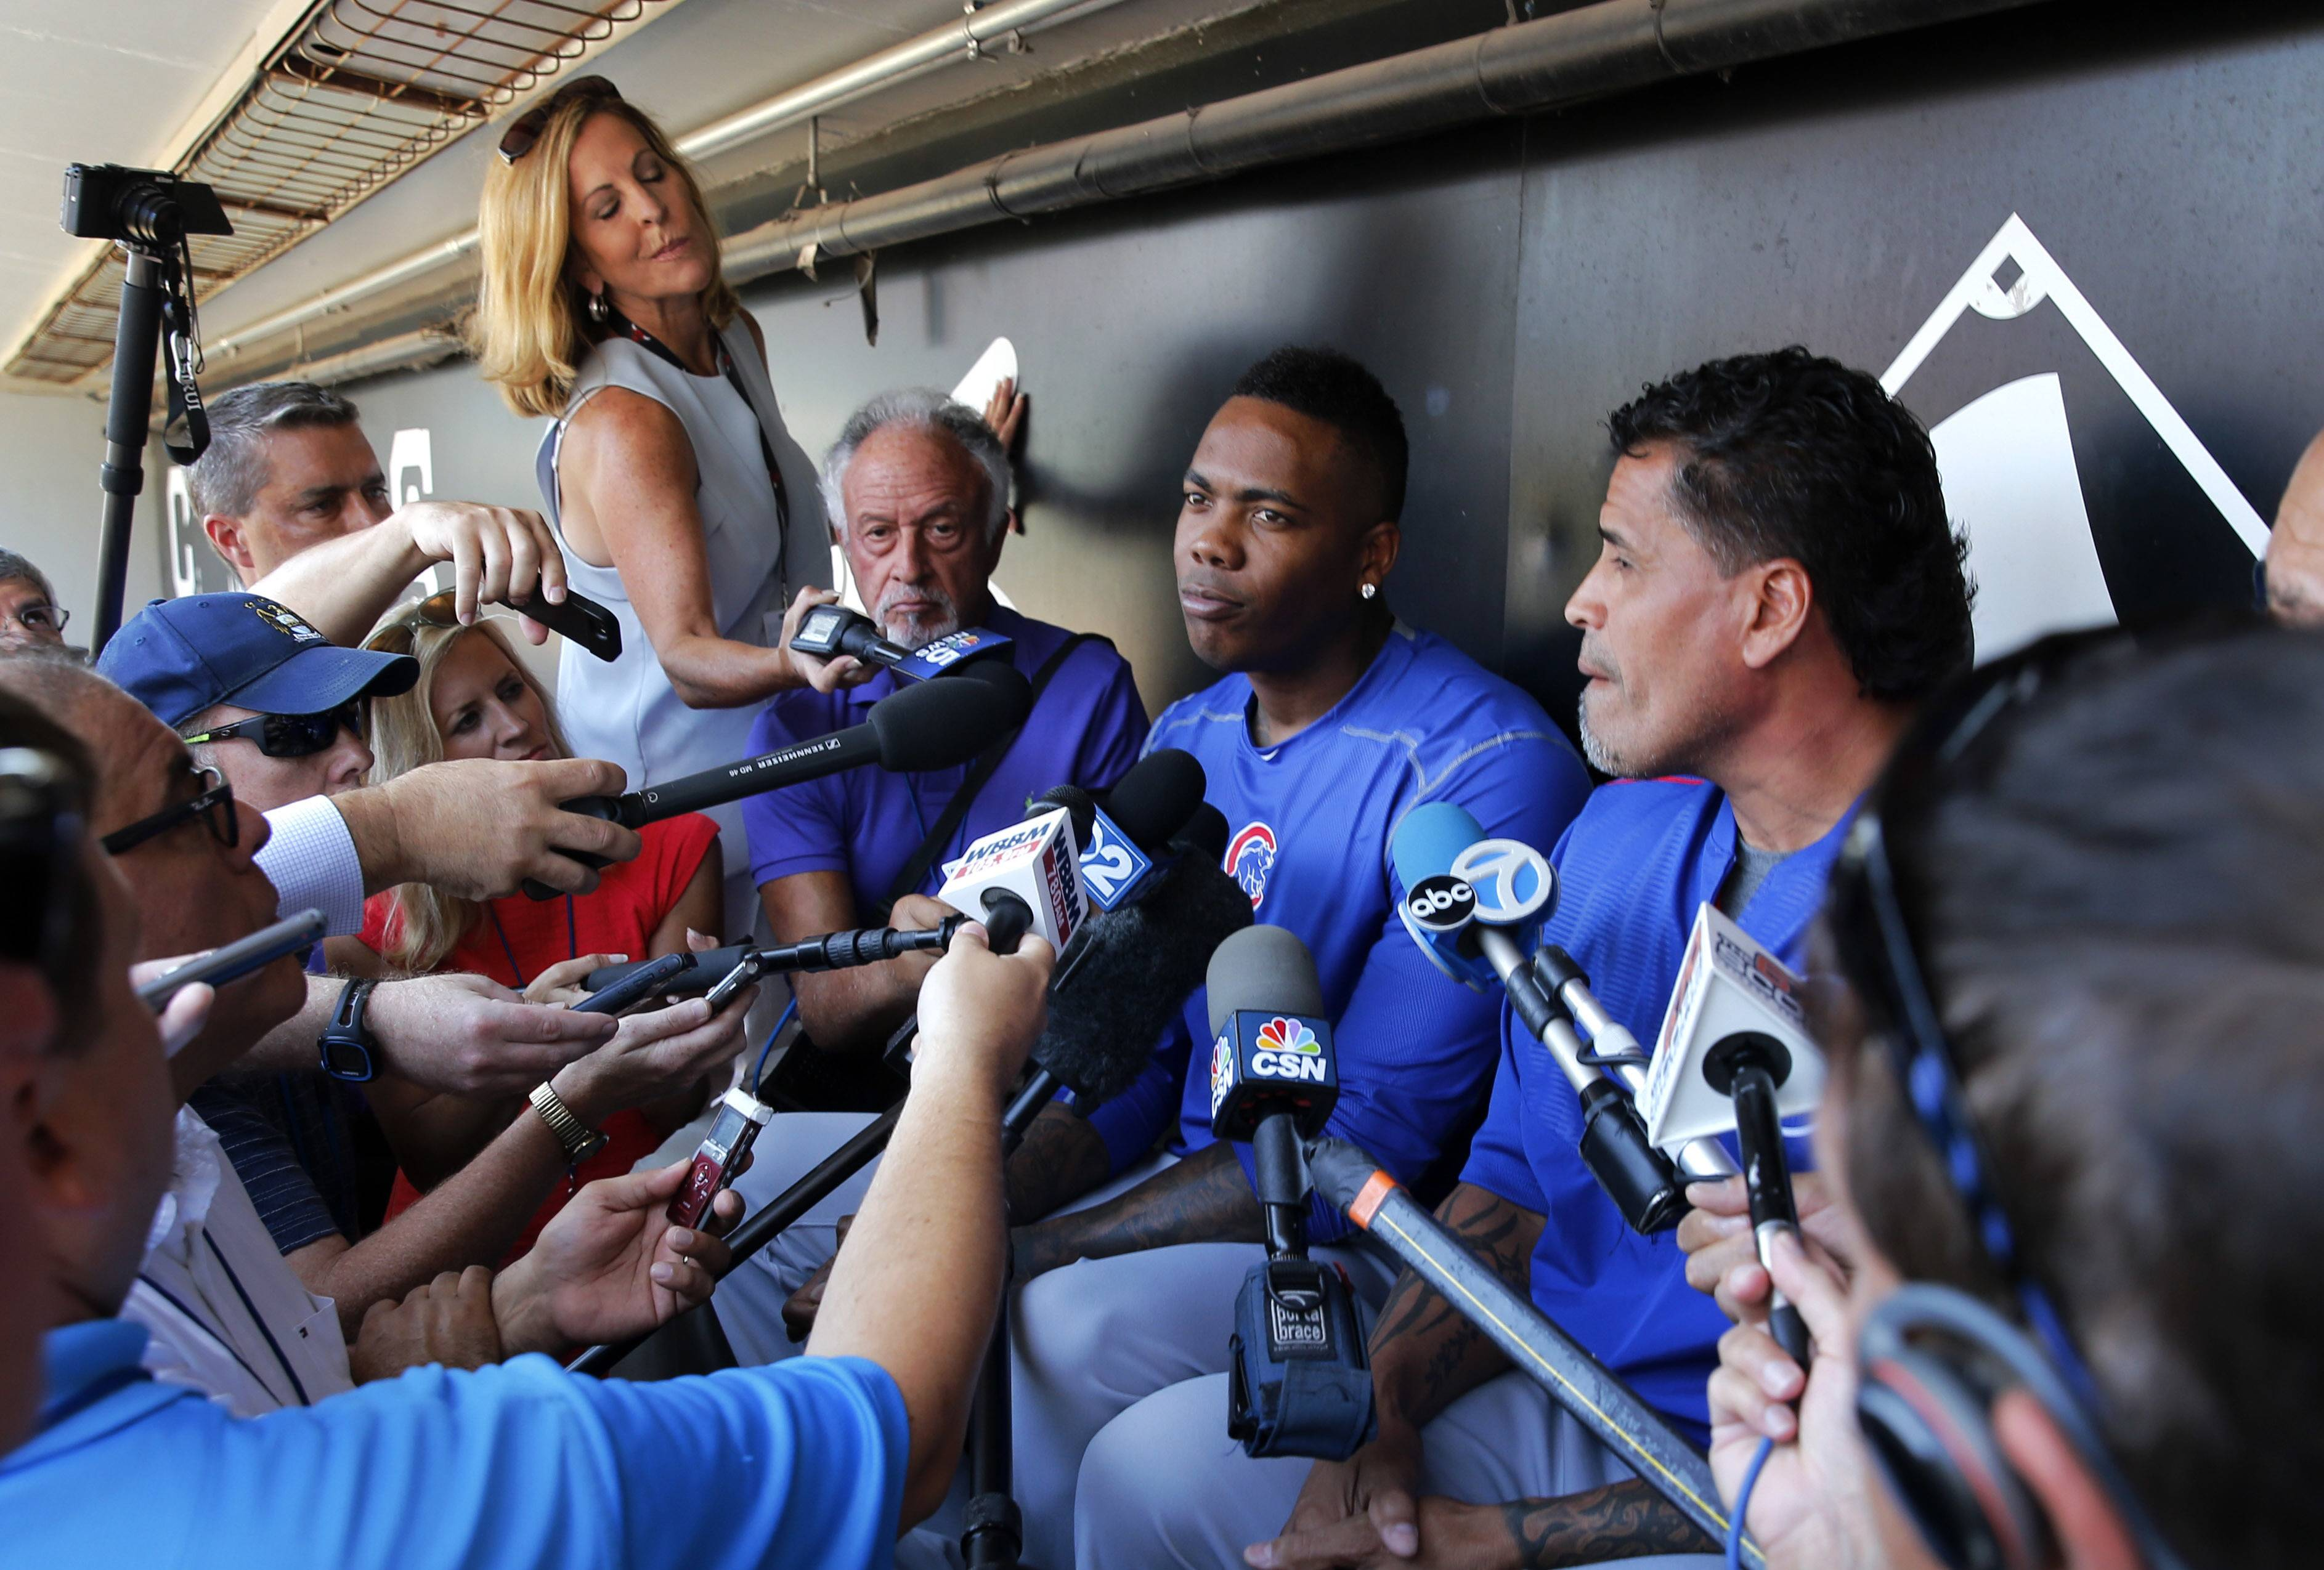 Chicago Cubs reliever Aroldis Chapman, center, listens to a question as he meets reporters before a baseball game between the Chicago White Sox and Cubs Tuesday, July 26, 2016, in Chicago. (AP Photo/Charles Rex Arbogast)